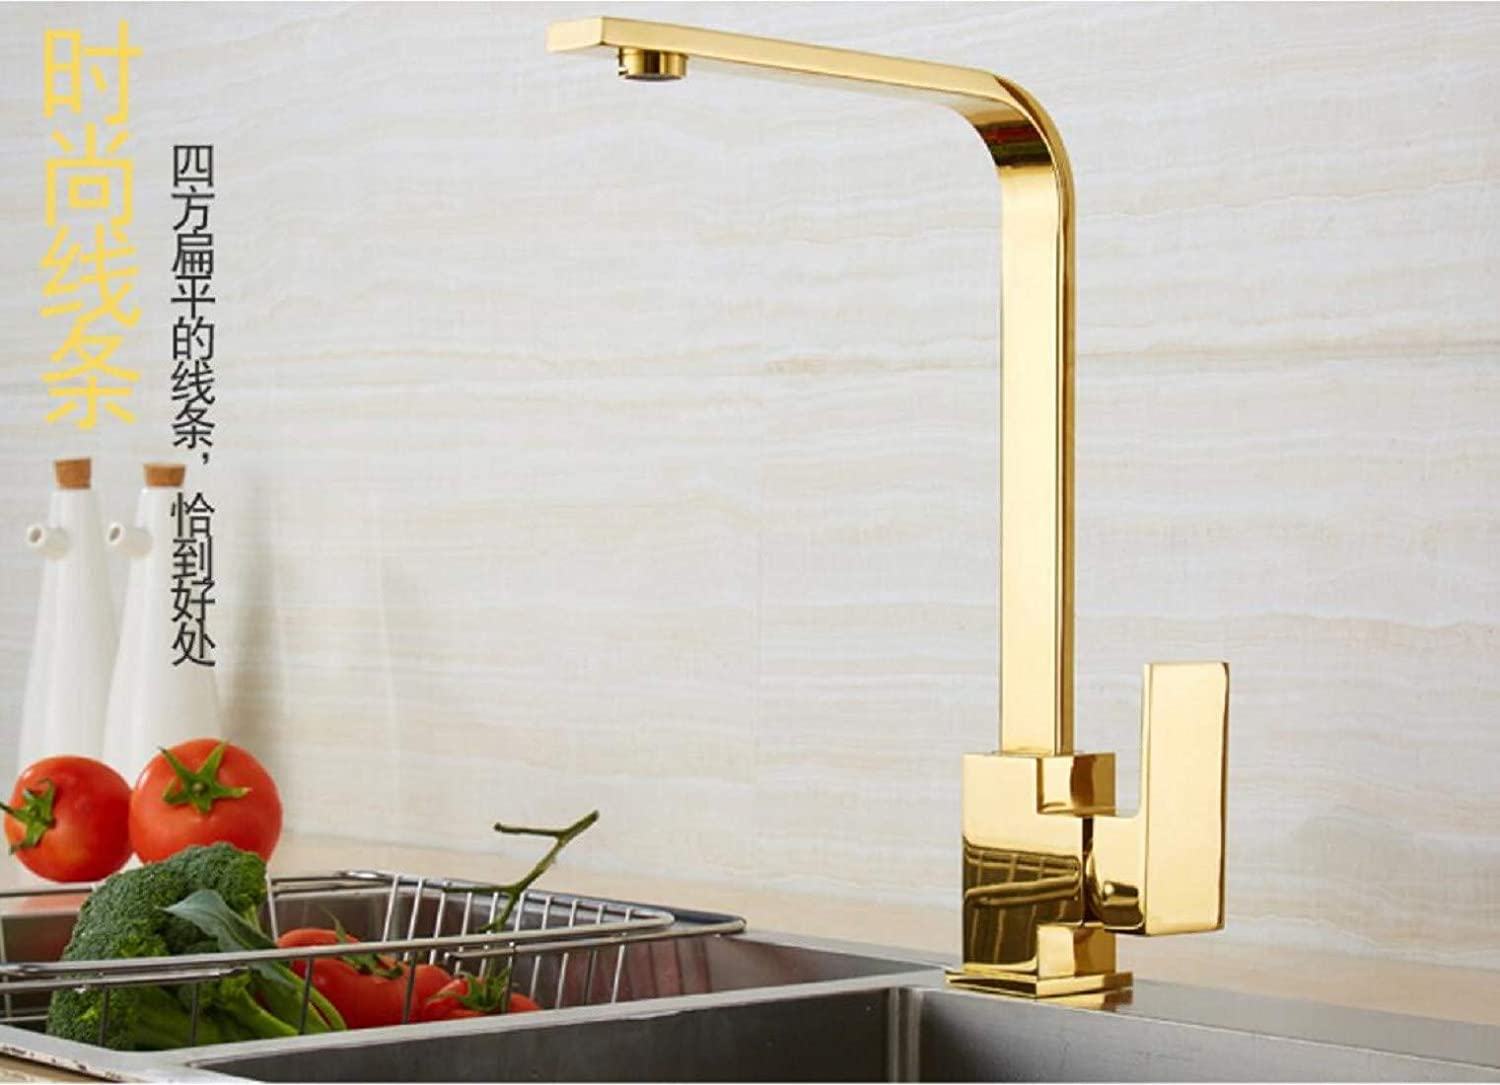 Kitchen Tap Simple redary Kitchen Sink Hot and Cold Kitchen Taps Kitchen Sink Mixer Taps Basin Tap